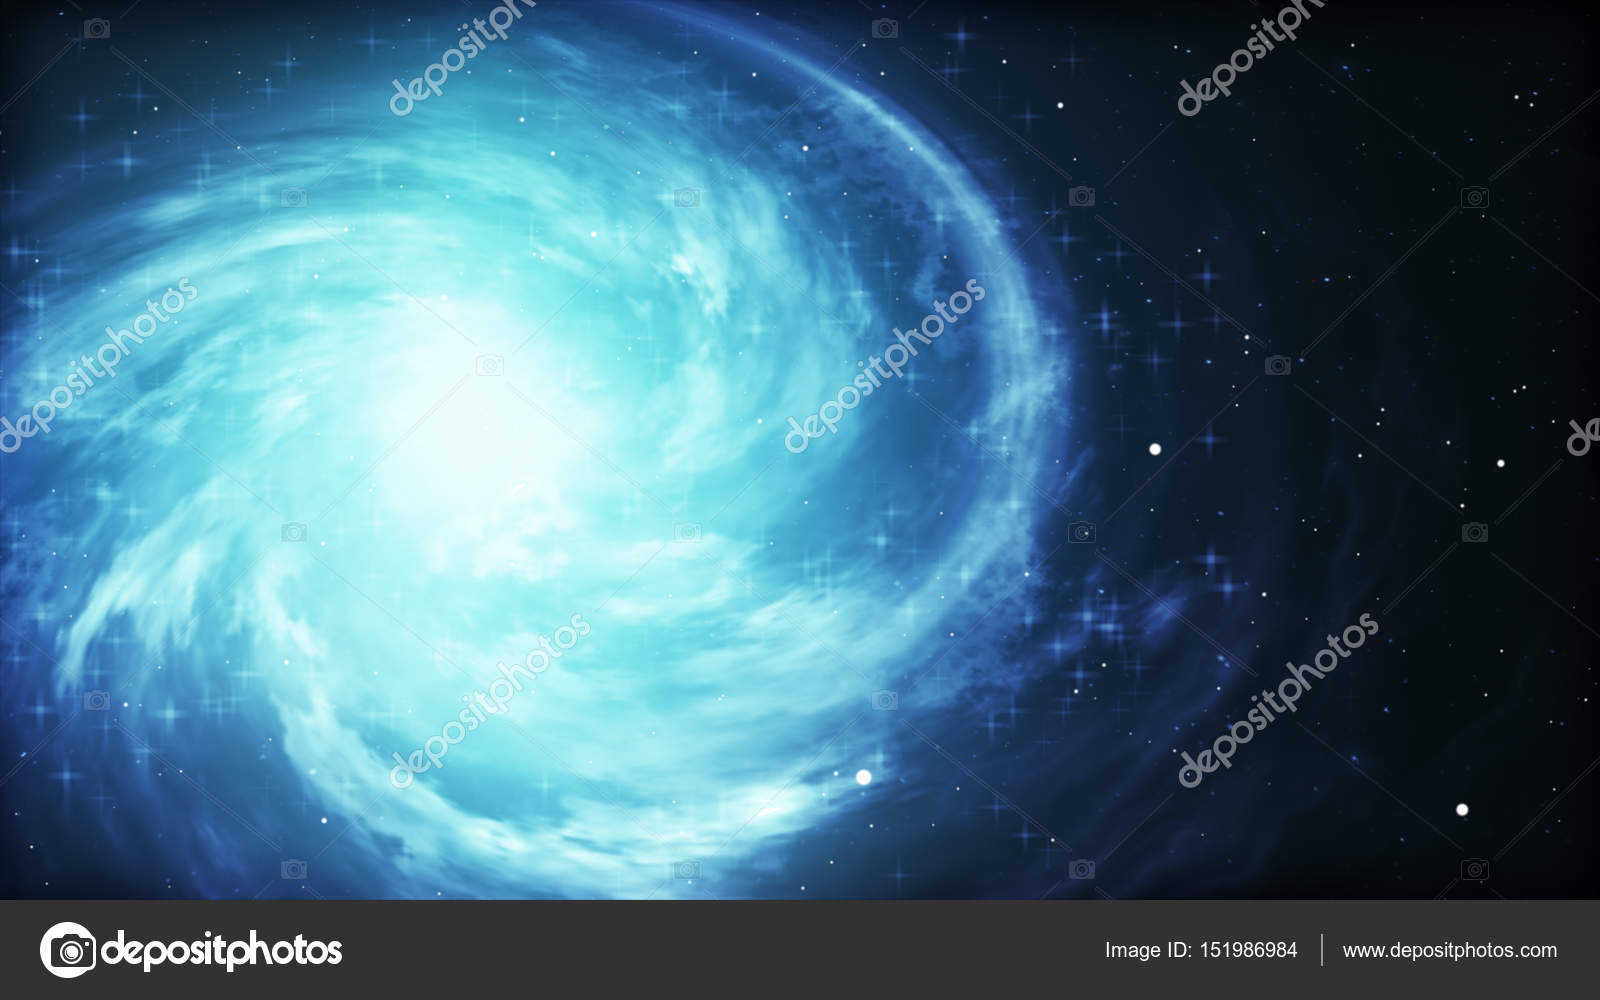 Bright Cosmic Background With Blue Glowing Vortex Abstract